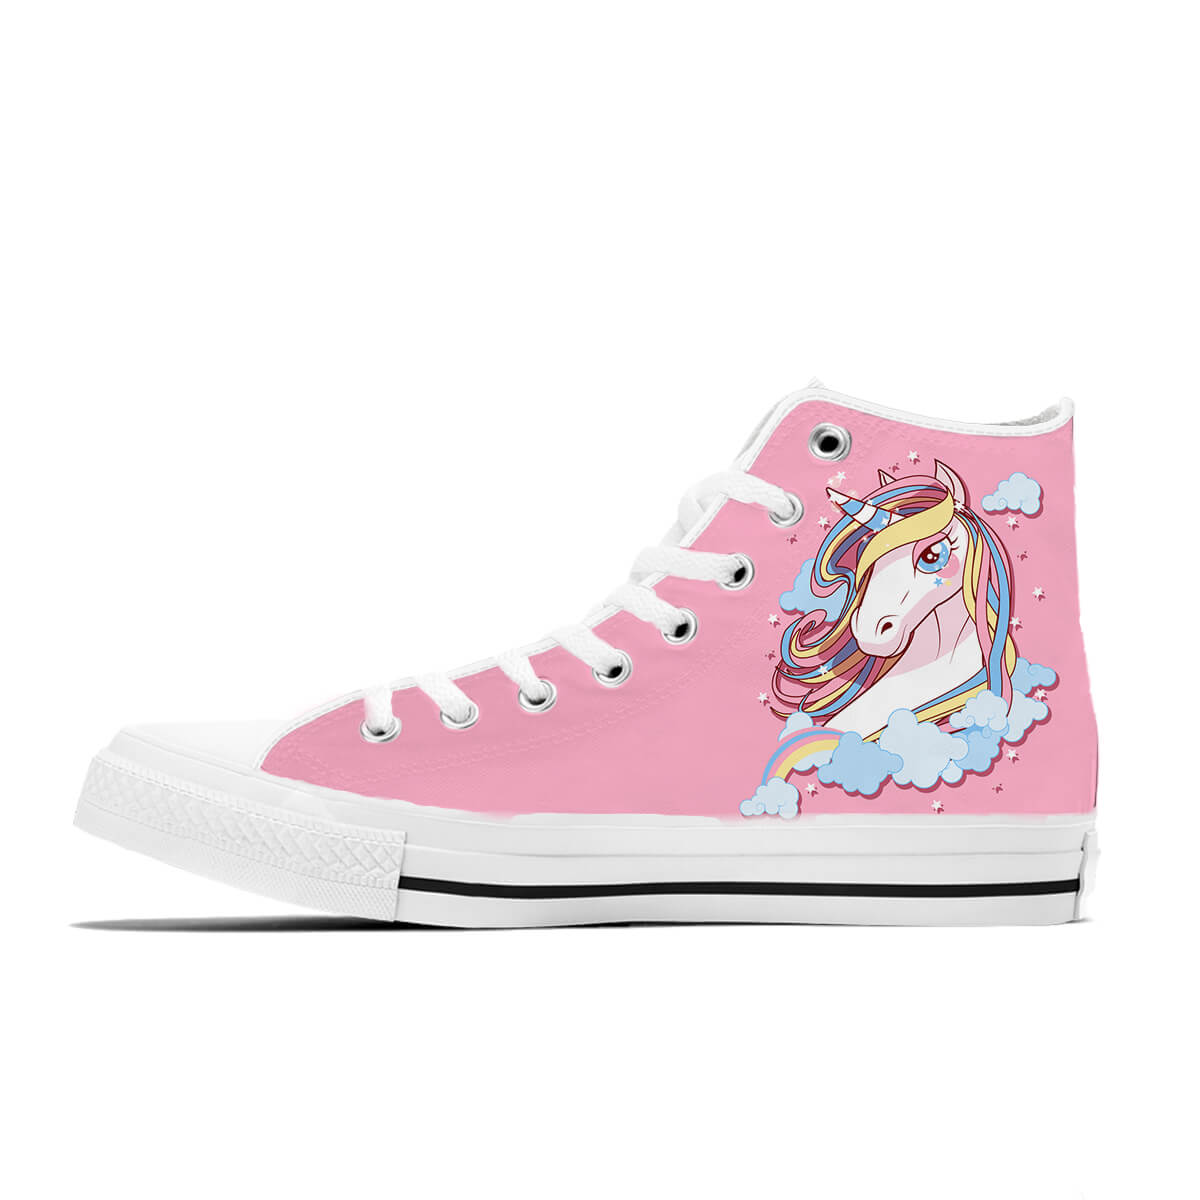 Pink Unicorn High Tops - 24 Style